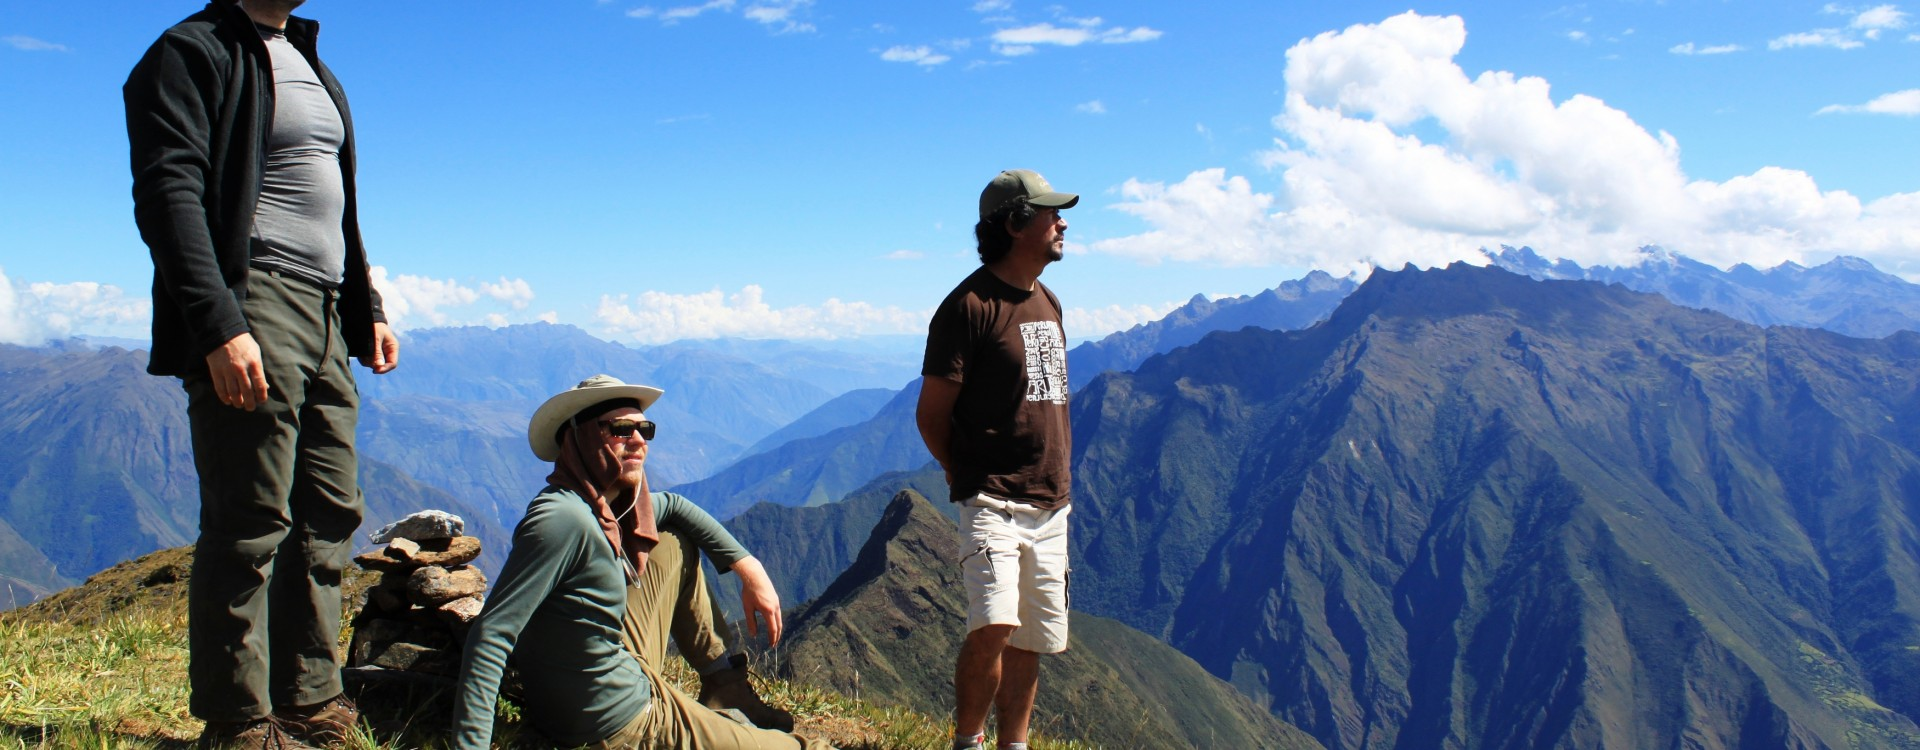 Enjoying the views on the Choquequirao Trail